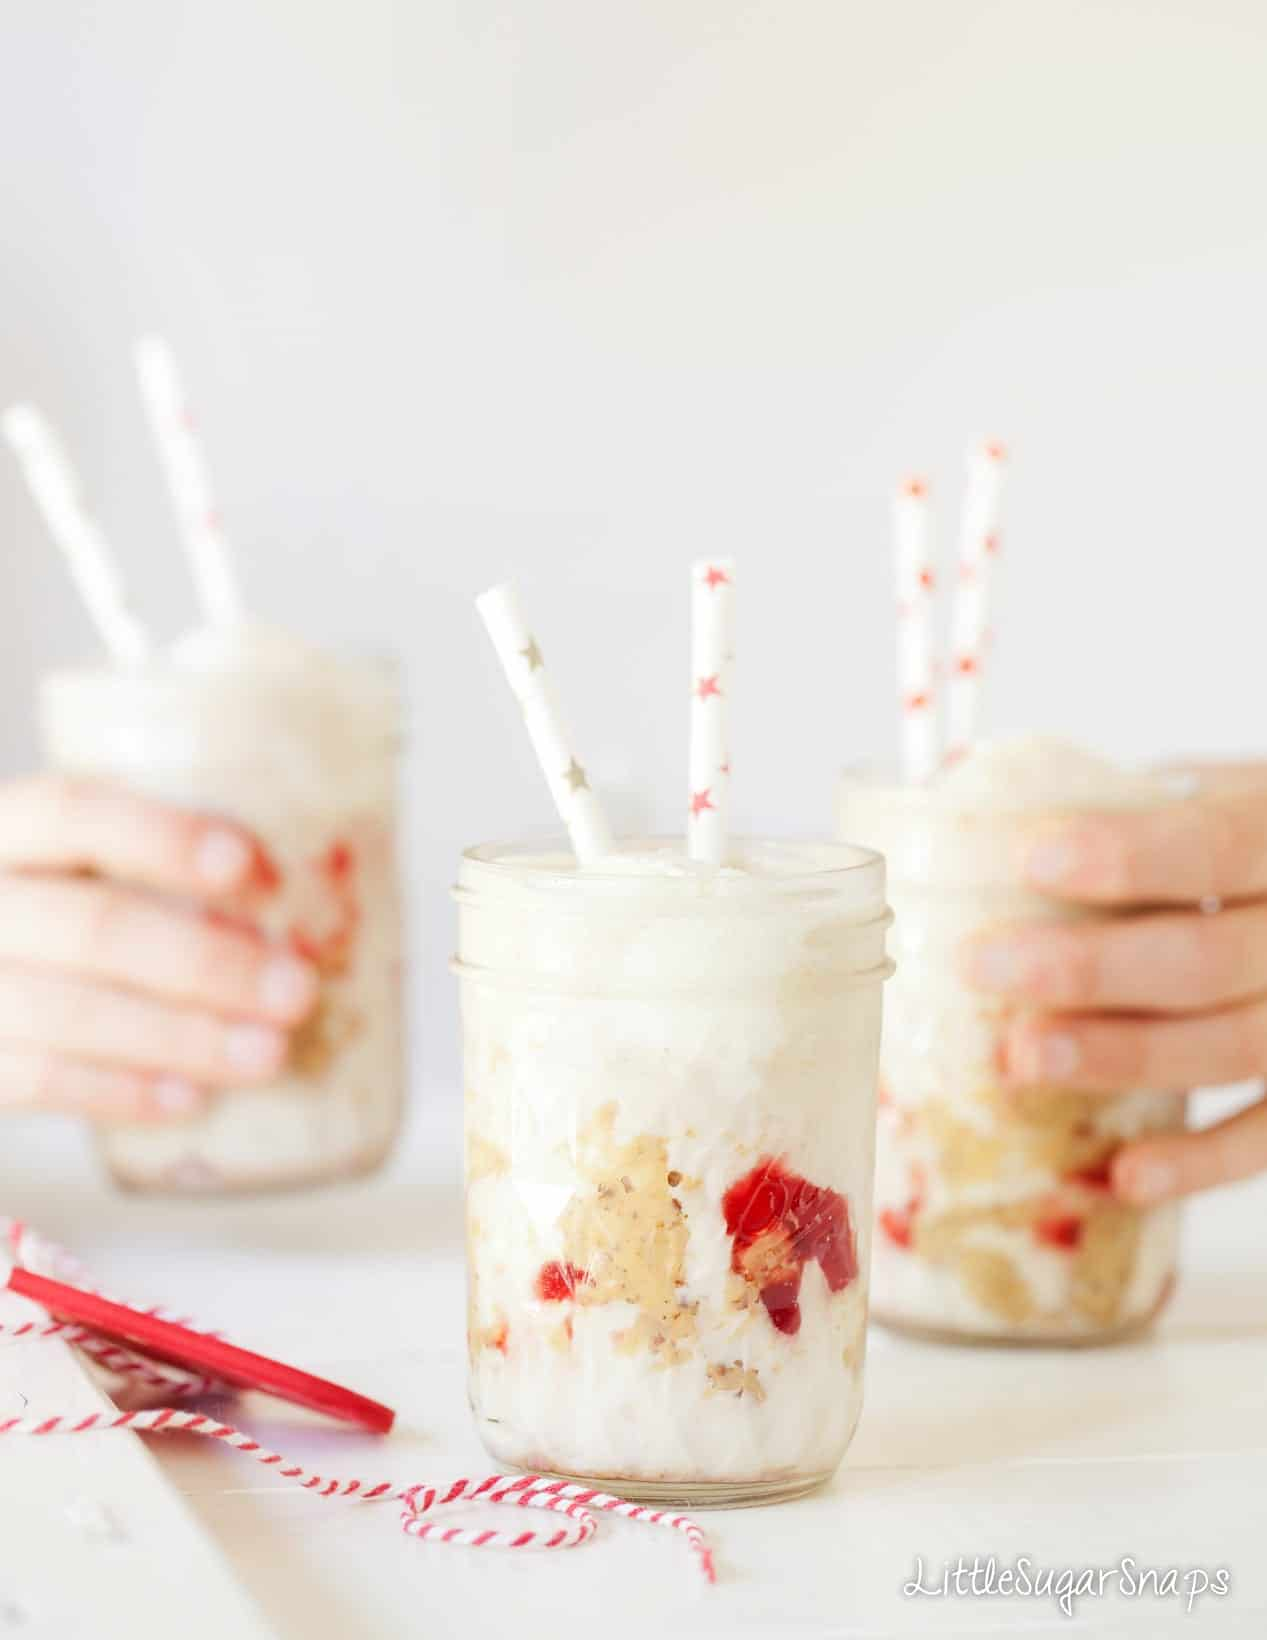 Children taking glasses of Peanut Butter and Jelly Milkshake from a table